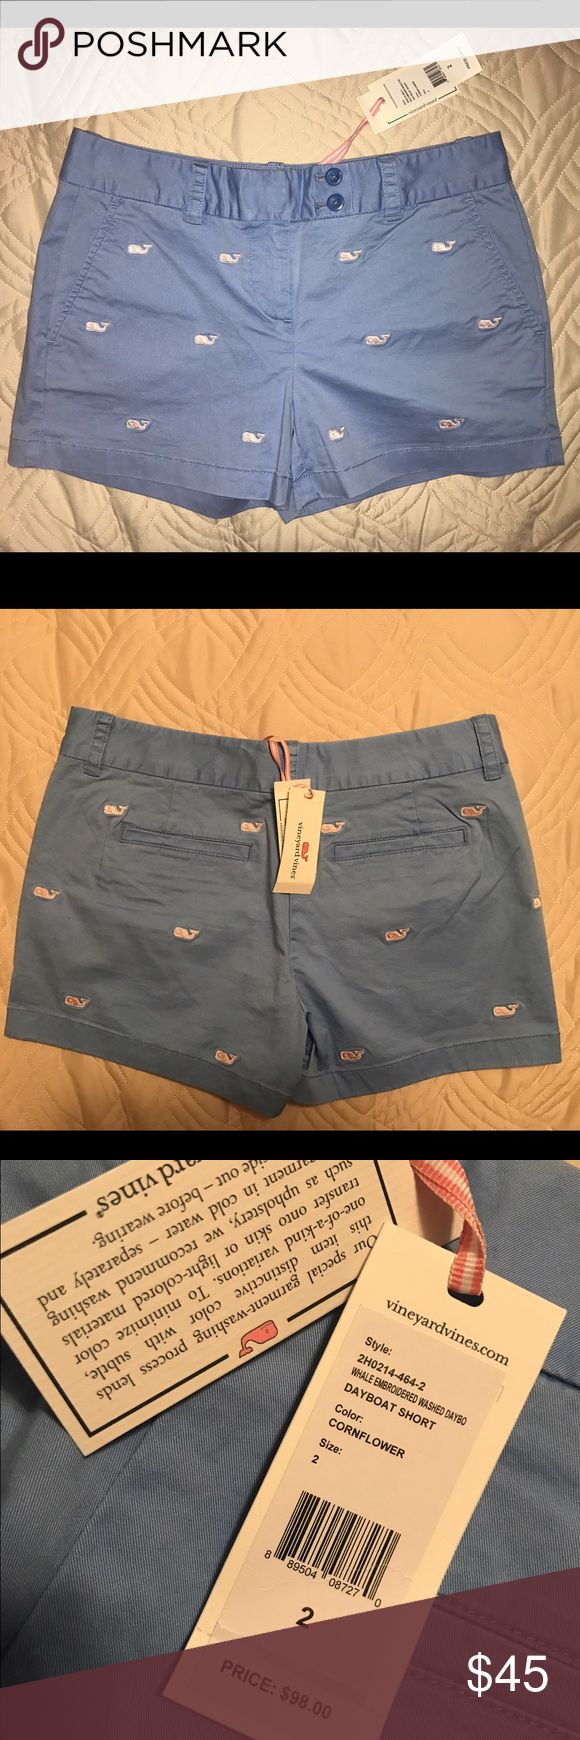 Vineyard Vines Blue Shorts with Whales New with tags baby blue Vineyard Vines Shorts with baby pink whales. Retail for $98! Perfect for spring and summer! Vineyard Vines Shorts